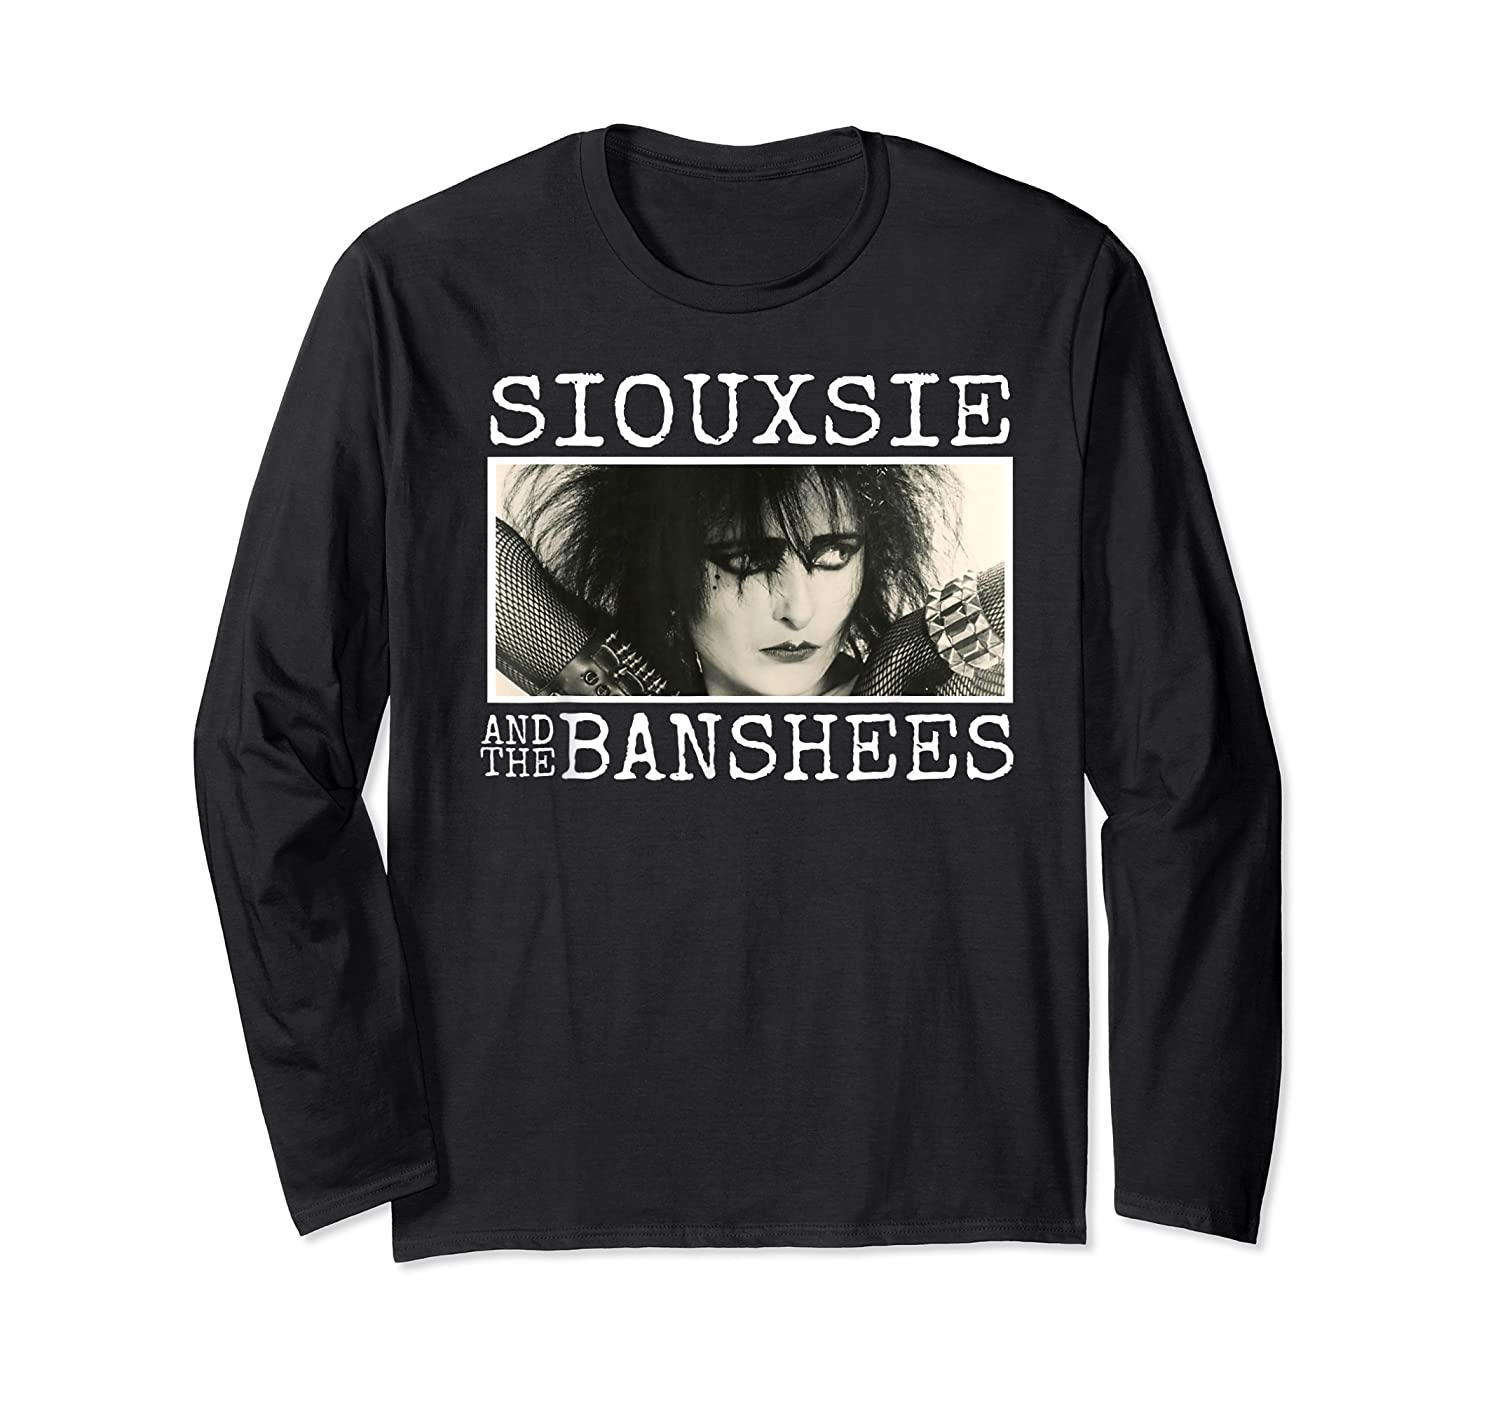 Siouxsie And The Banshee Siouxsie Sioux T Shirt Long Sleeve T-shirt